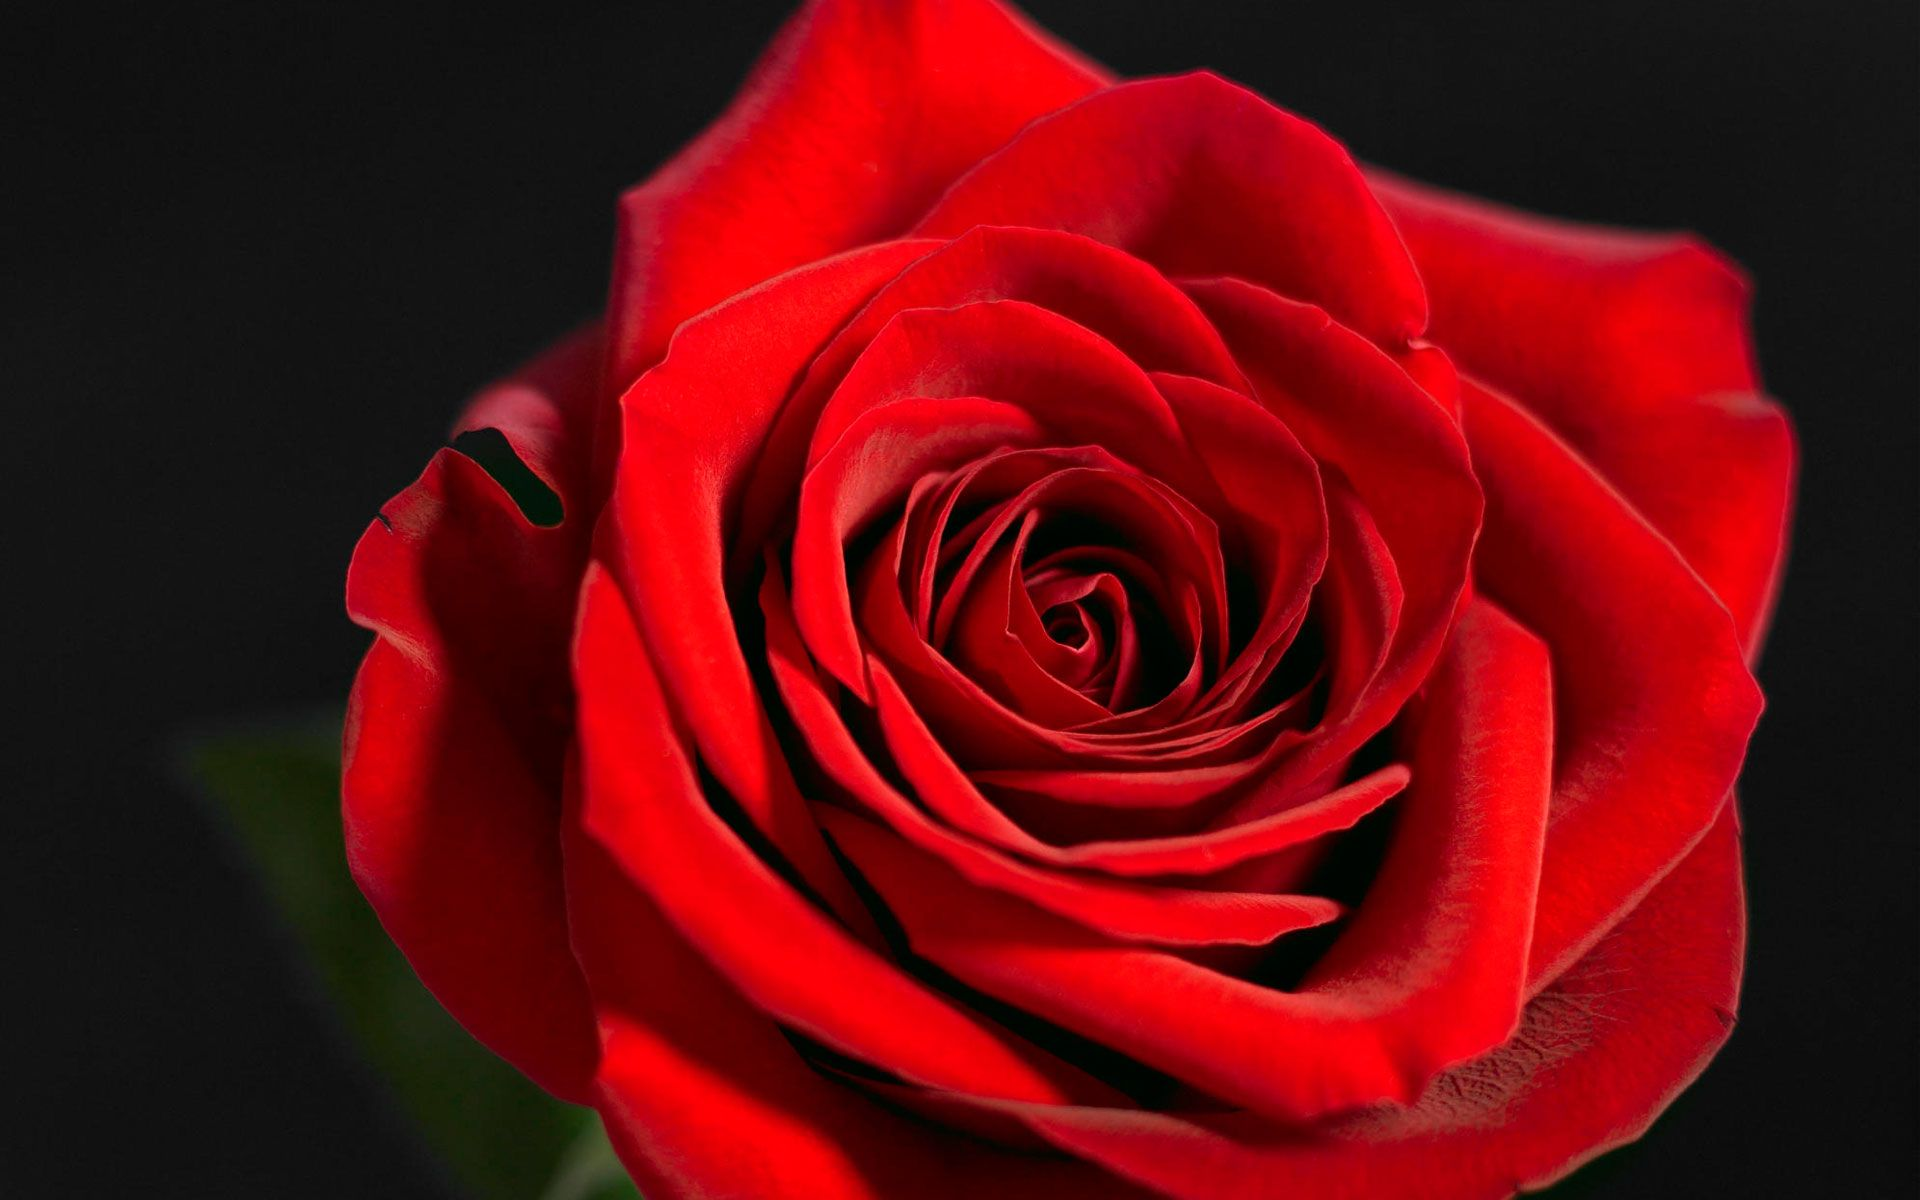 Hd wallpaper red rose - Find This Pin And More On Hd Wallpapers Rose Wallpapers Red